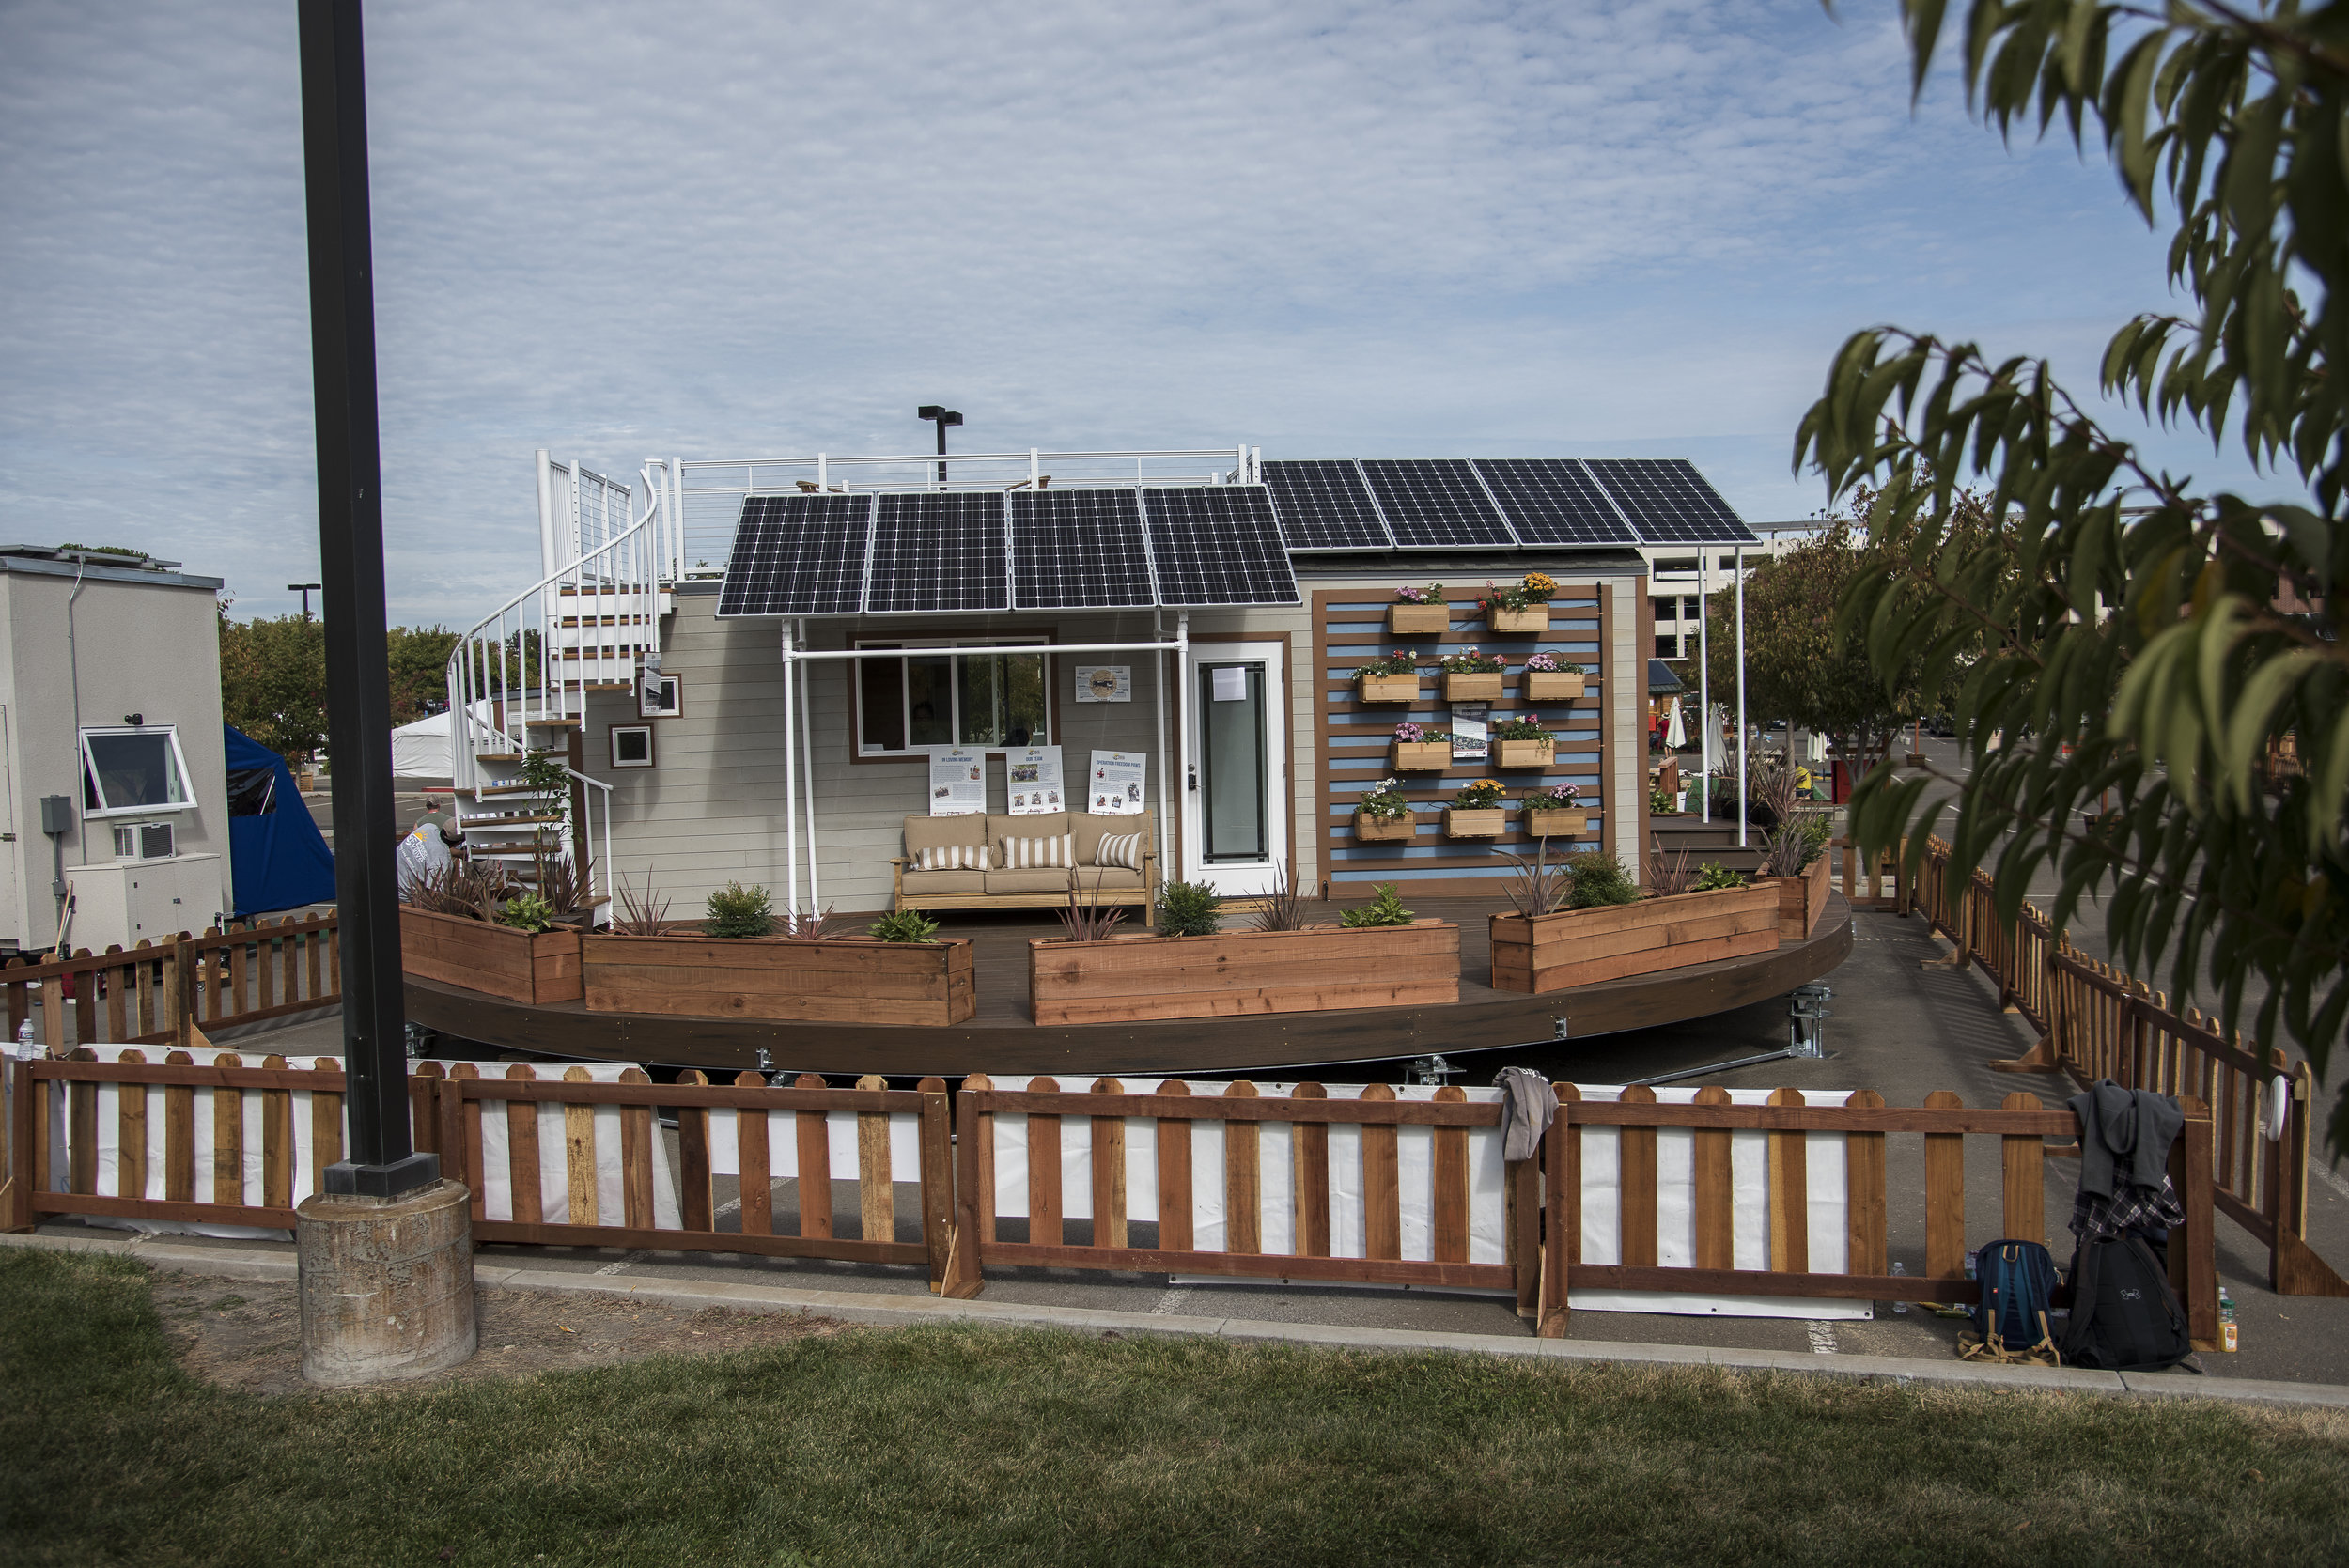 JL161013_4161_0131_TinyHouseCompetition.jpg